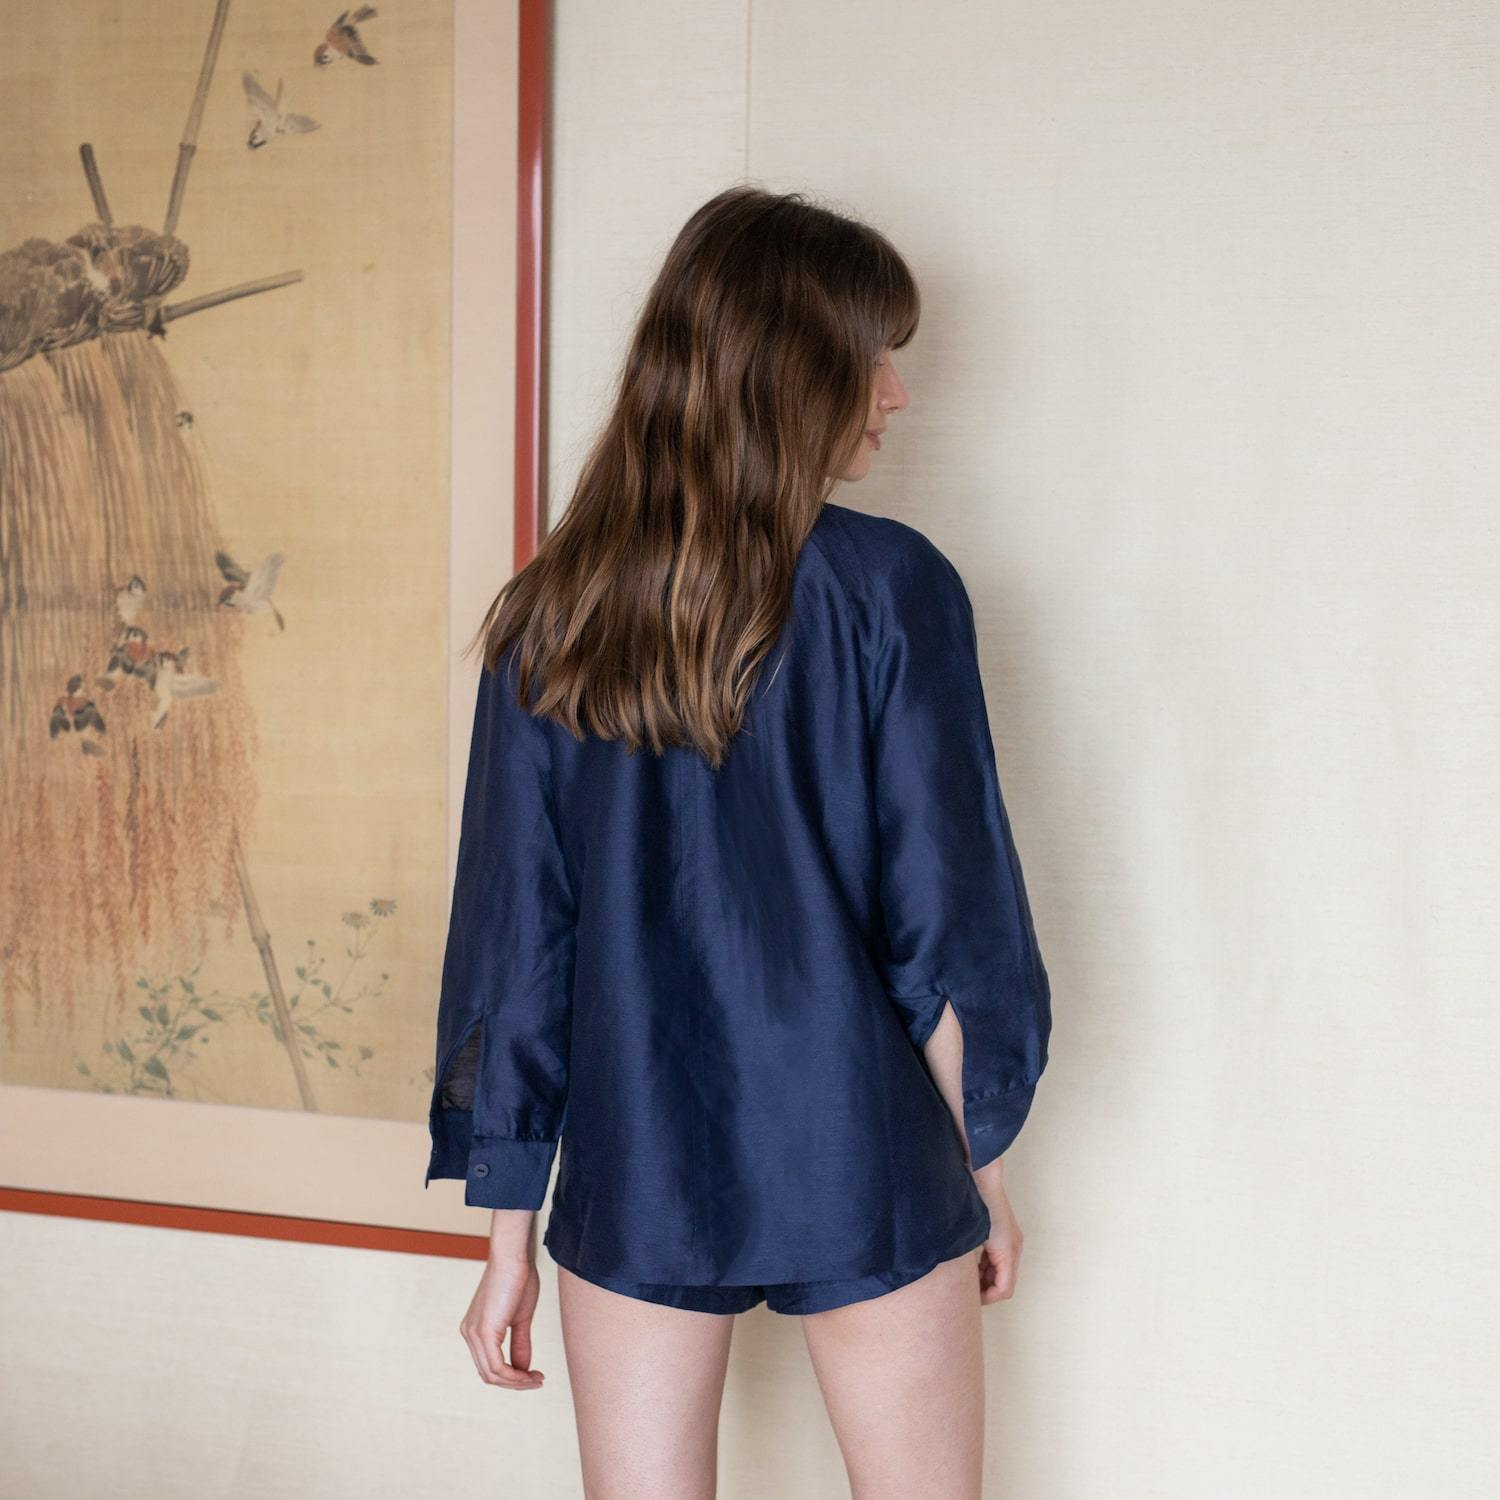 Lunya Sleepwear Resort Linen Silk Shirt Set - #Deep Night